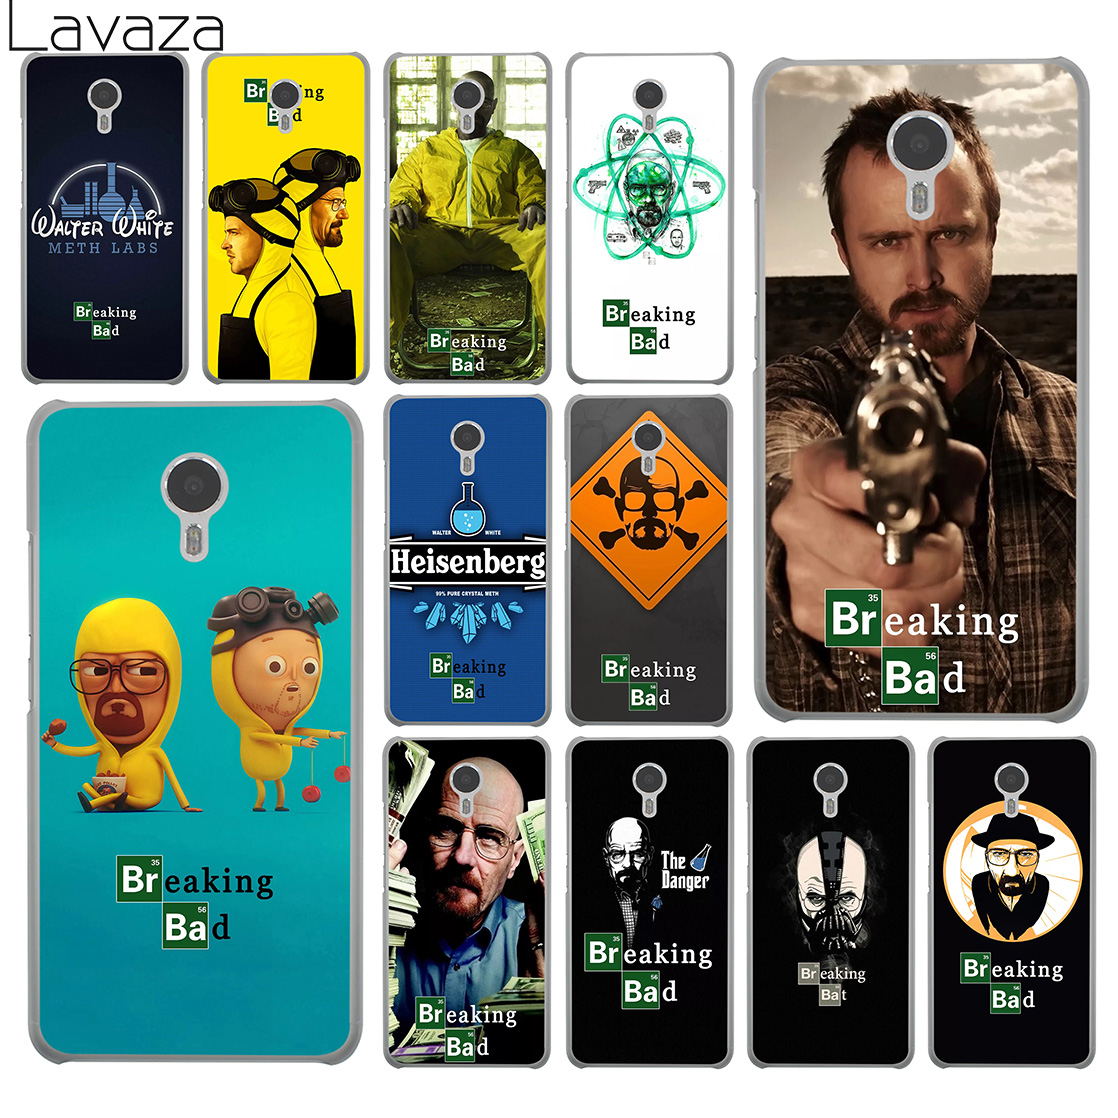 Lavaza Breaking Bad heisenberg tv series Hard Phone Case for Meizu M6 M5 M5C M5S M3 M3S M2 Mini Note U10 U20 Pro 7 Plus 6 Cover ...